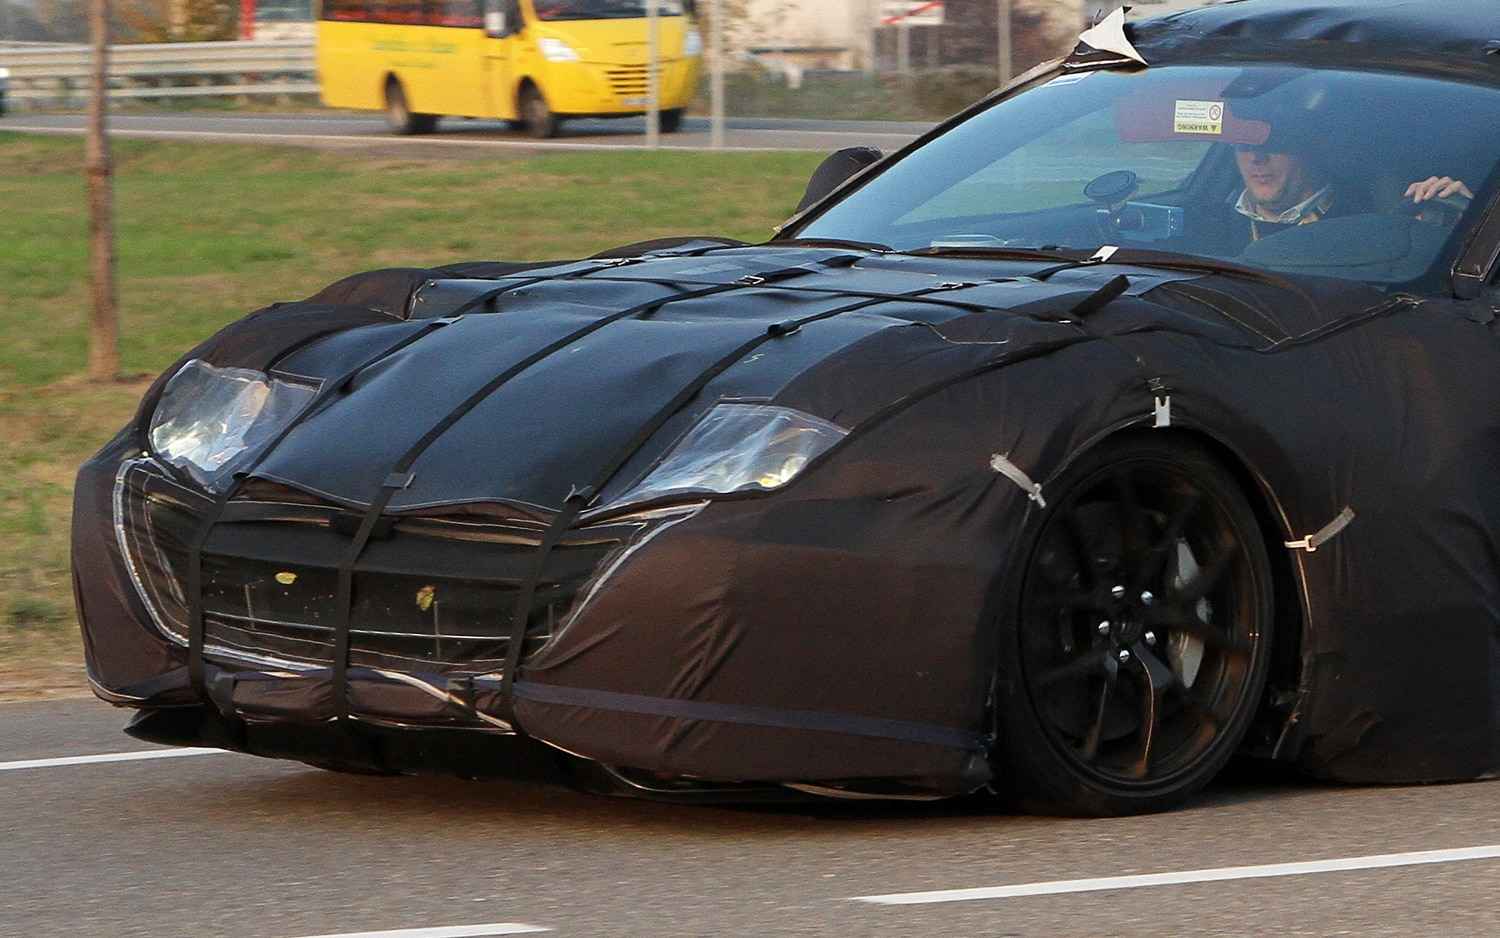 Ferrari 599 Replacement Spy Photo